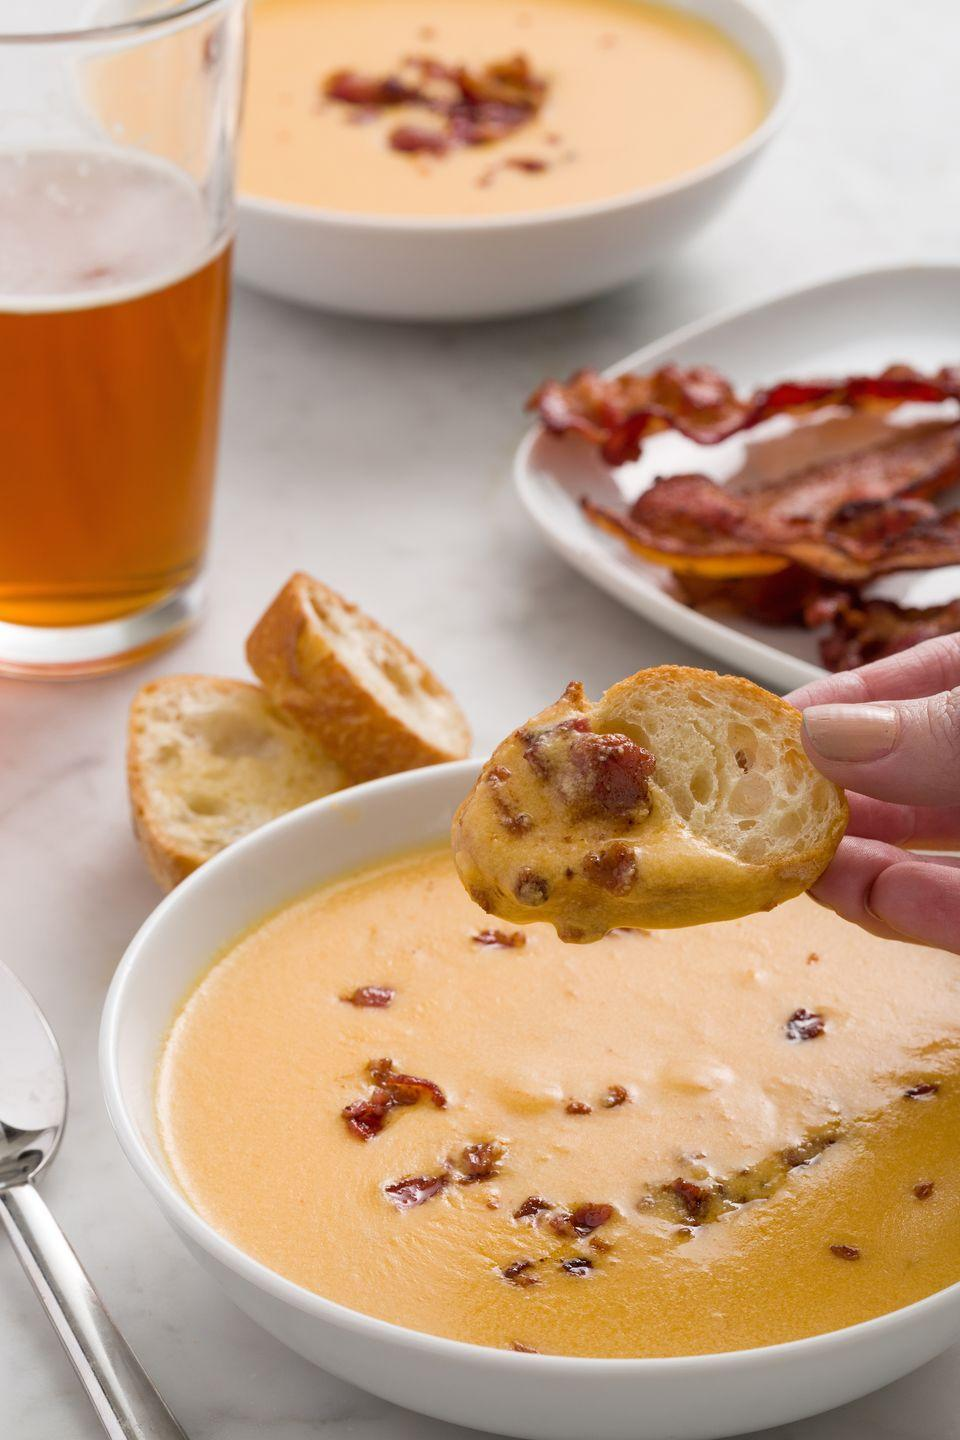 """<p>It's basically cheese fondue you can eat with a spoon.</p><p>Get the recipe from <a href=""""https://www.delish.com/cooking/recipe-ideas/recipes/a44739/bacon-beer-cheese-soup-recipe/"""" rel=""""nofollow noopener"""" target=""""_blank"""" data-ylk=""""slk:Delish"""" class=""""link rapid-noclick-resp"""">Delish</a>.</p>"""